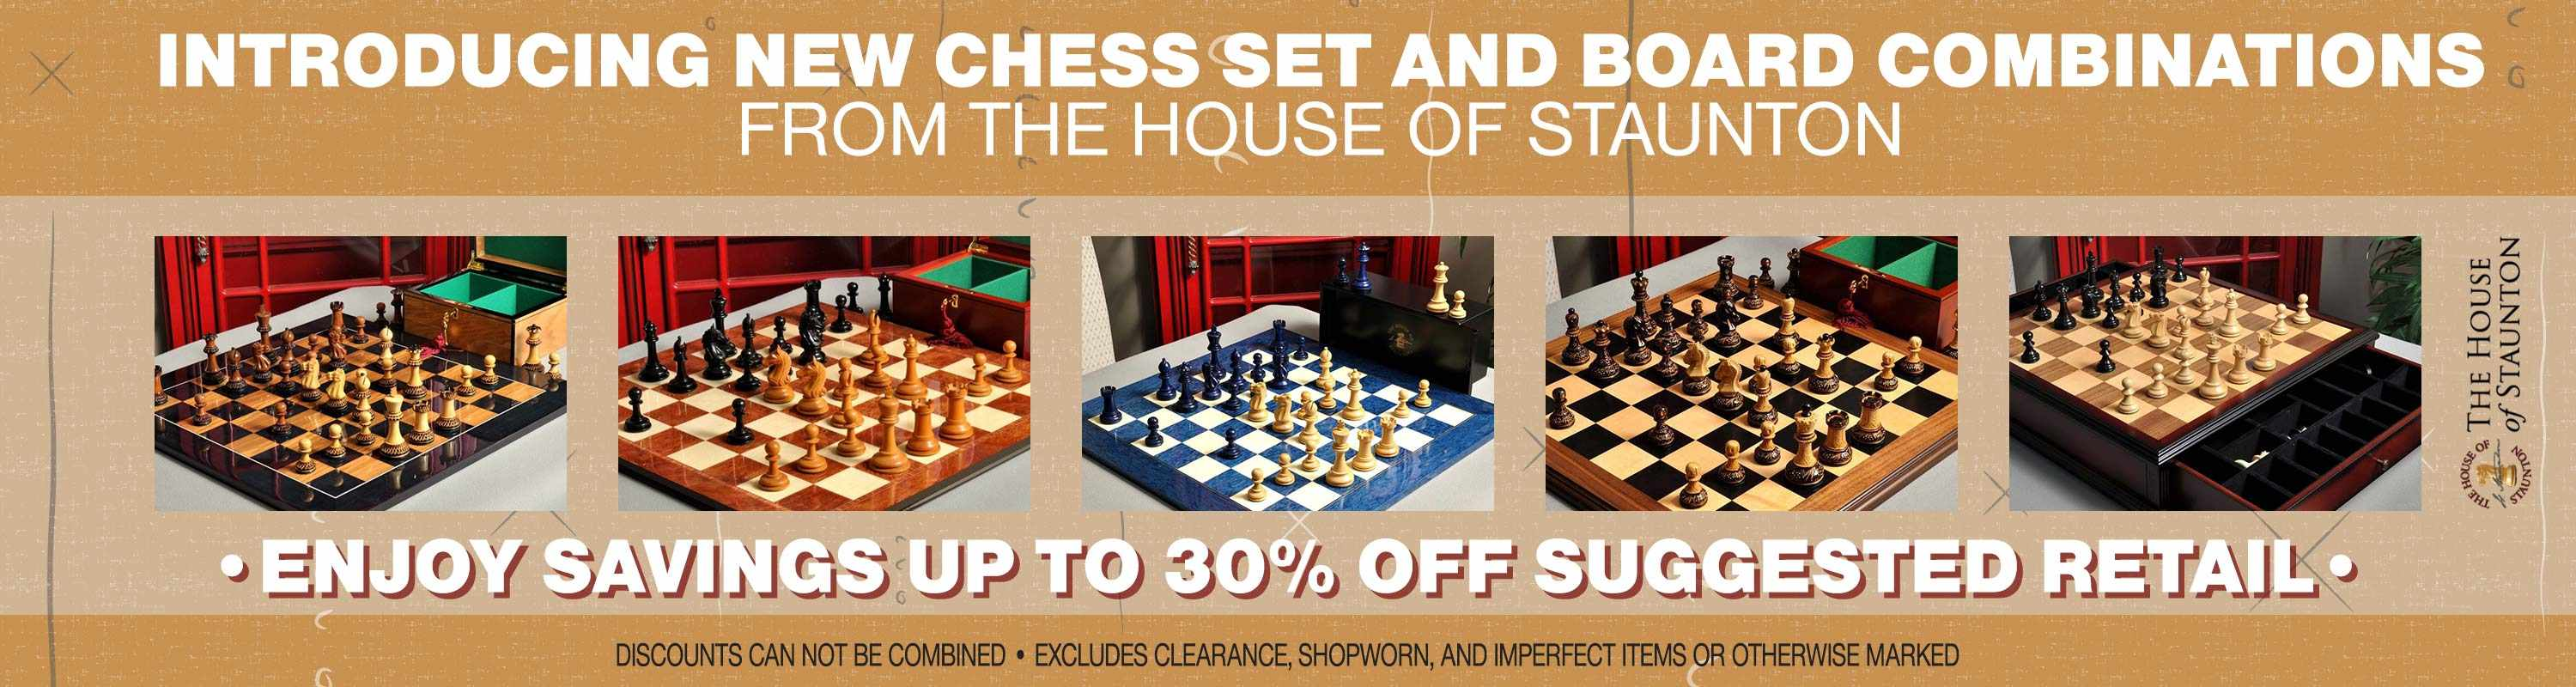 New Chess Set and Board Combinations from the House of Staunton